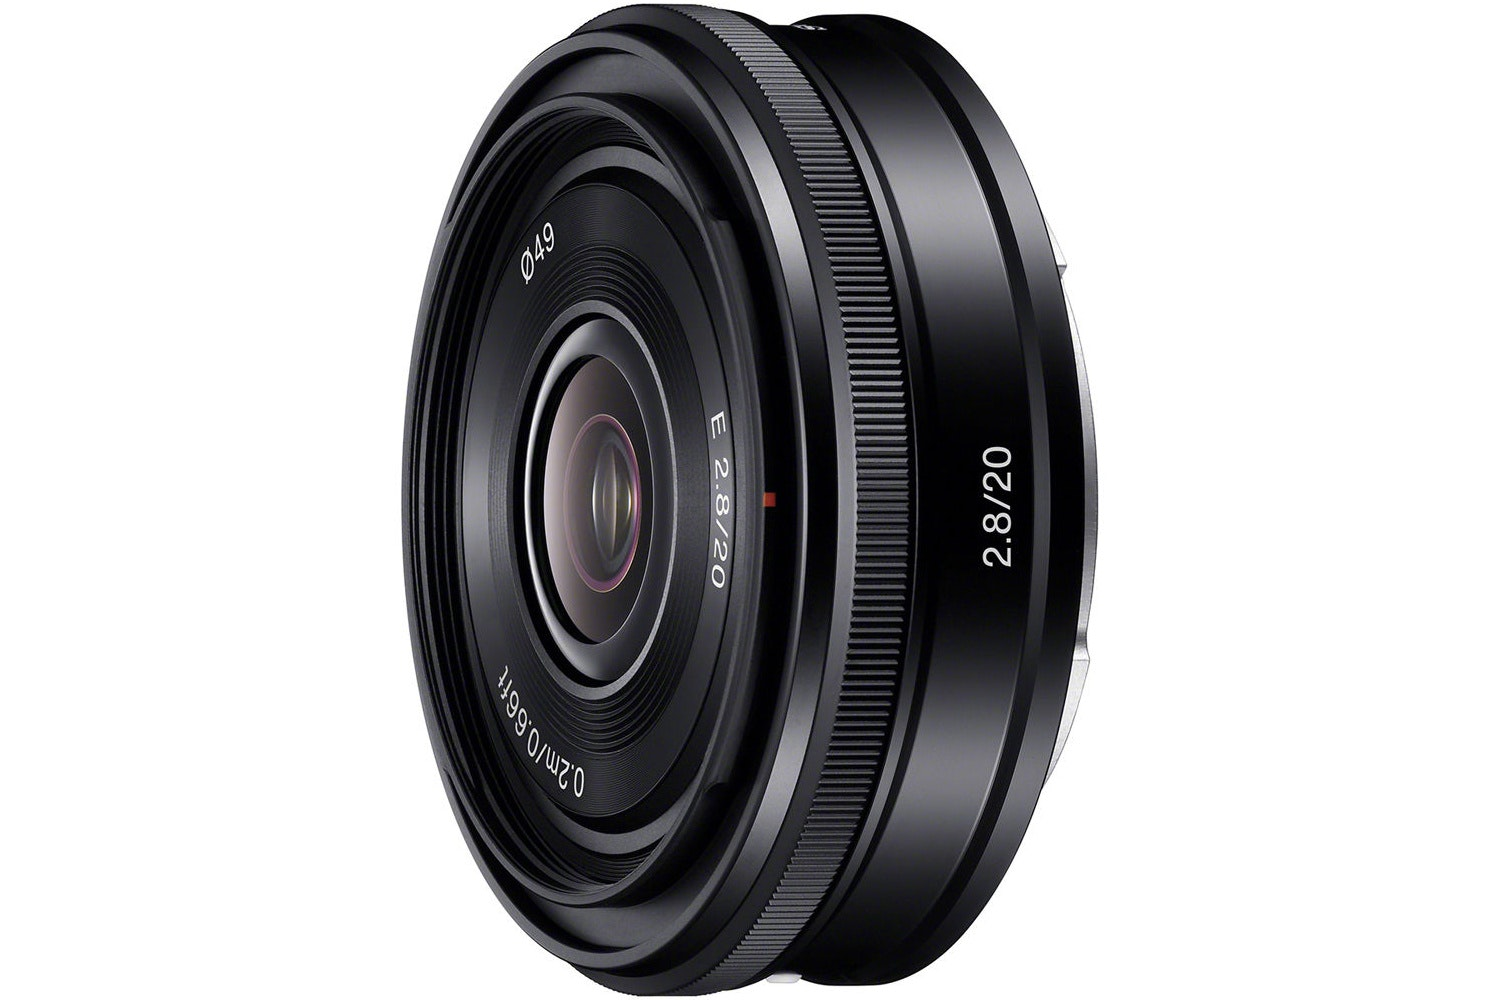 Sony 20mm f2.8 E-Mount Wide Angle Lens